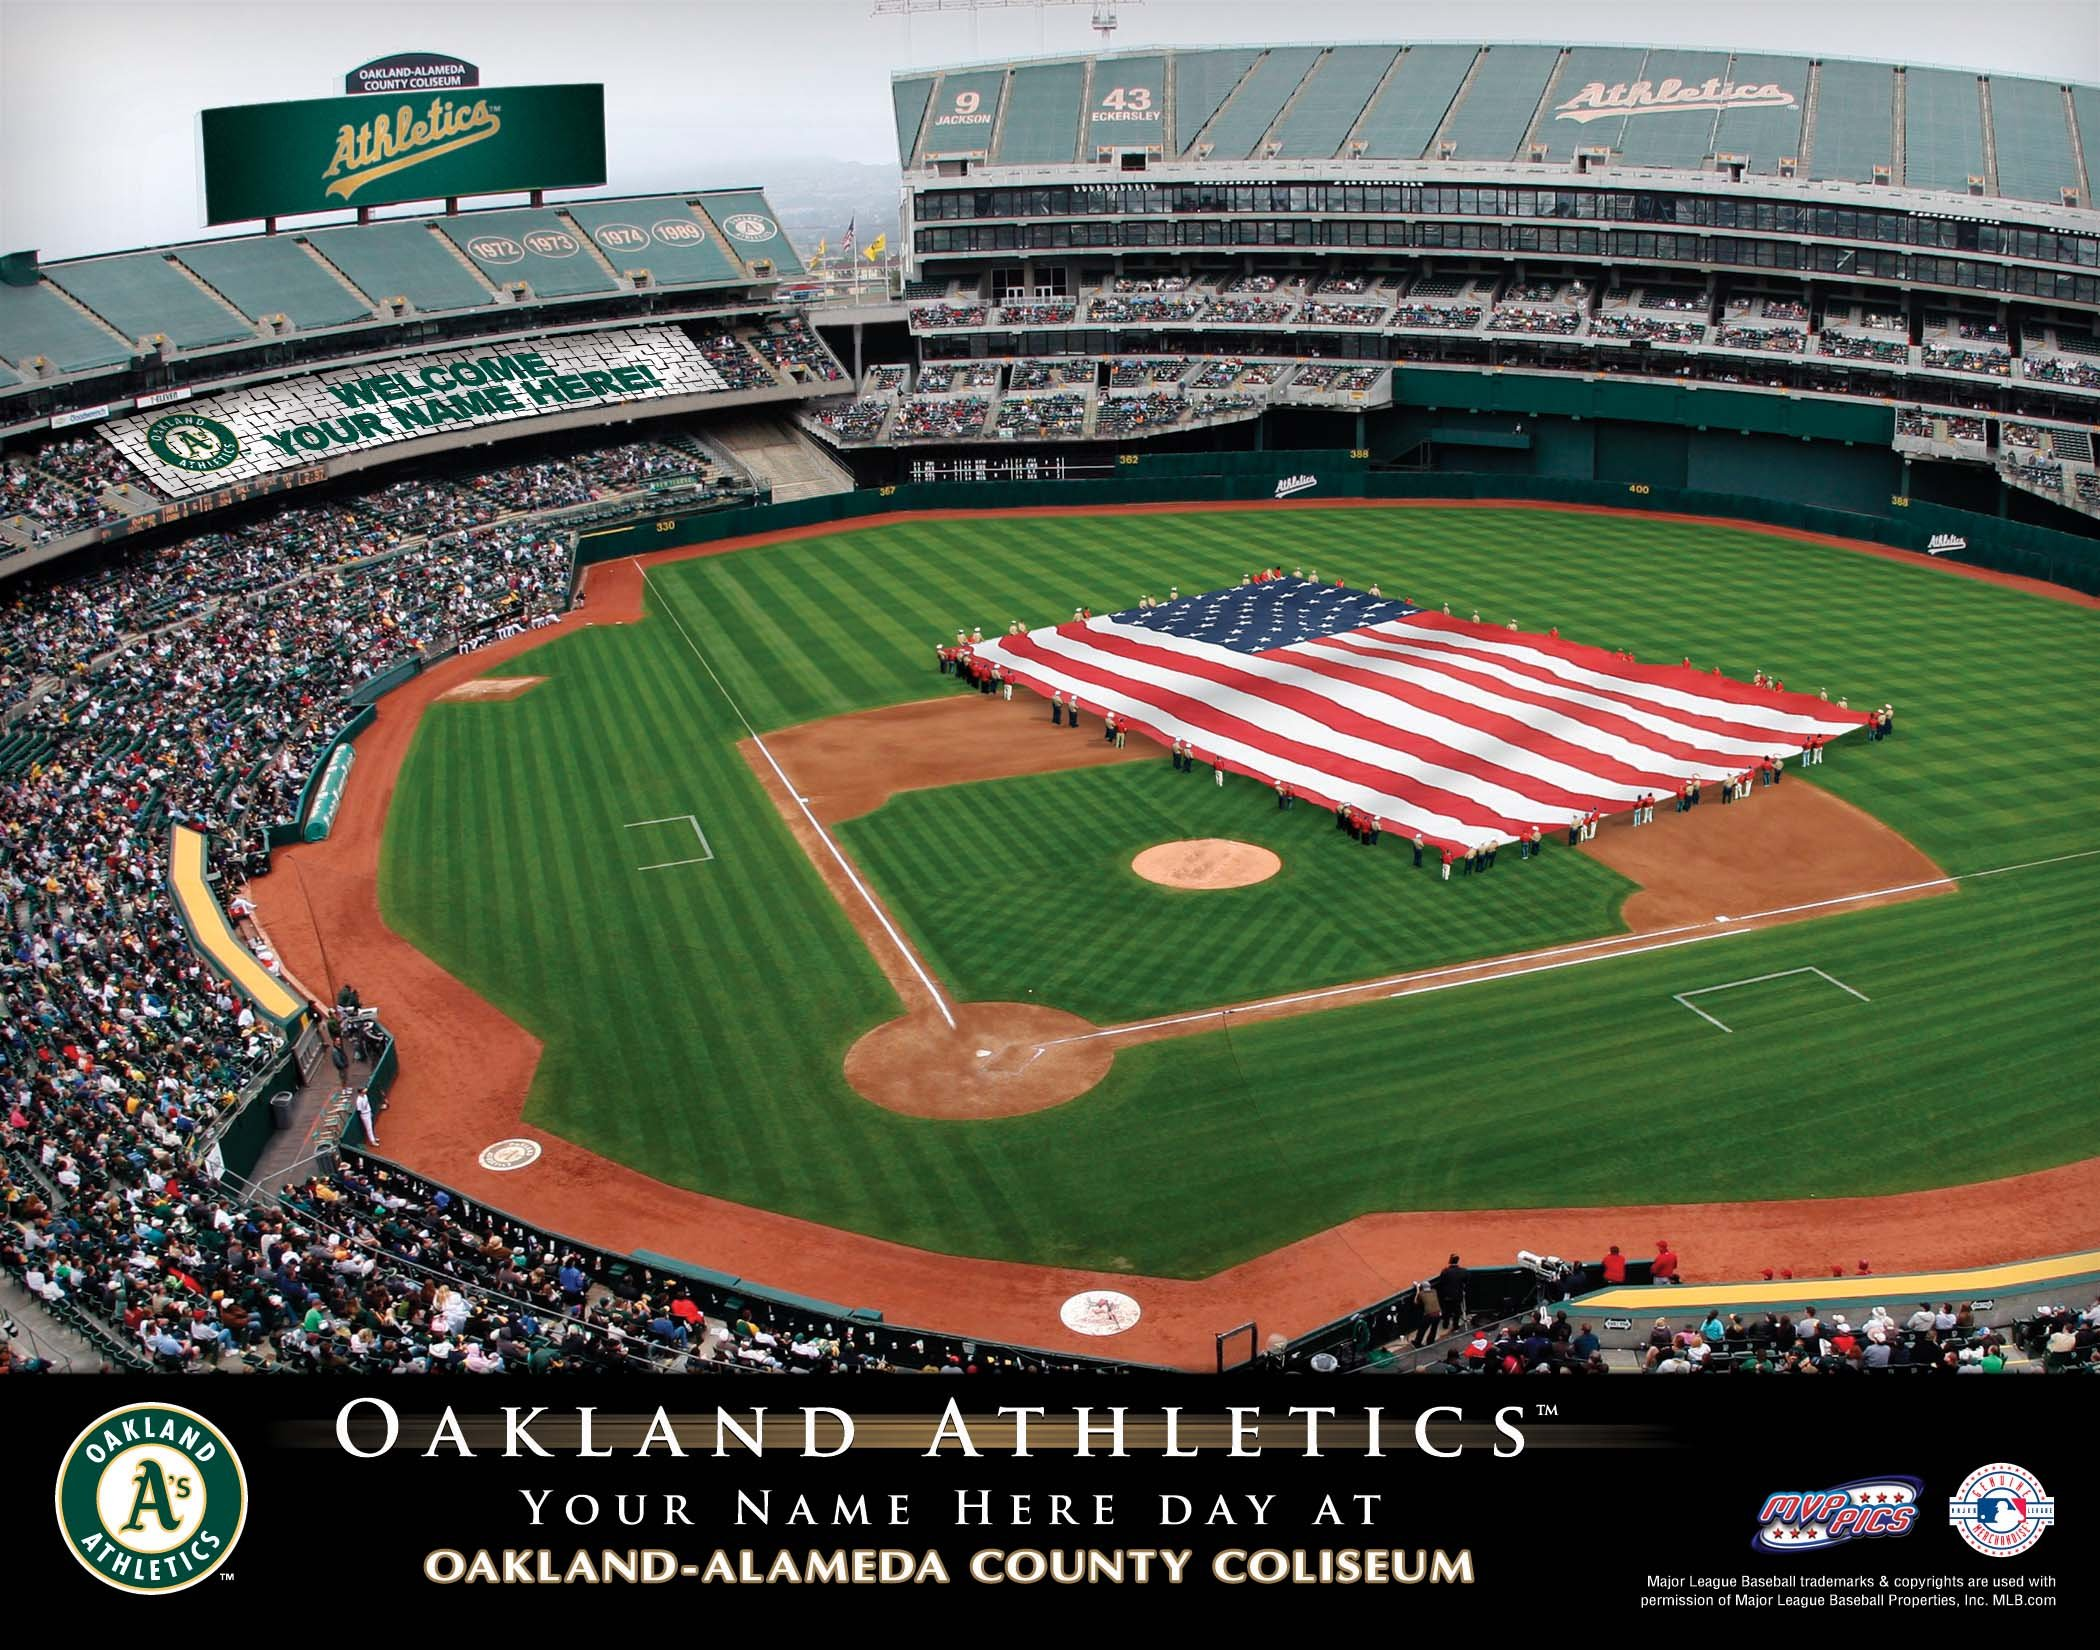 OAKLAND ATHLETICS mlb baseball 3 wallpaper 2100x1650 319091 2100x1650